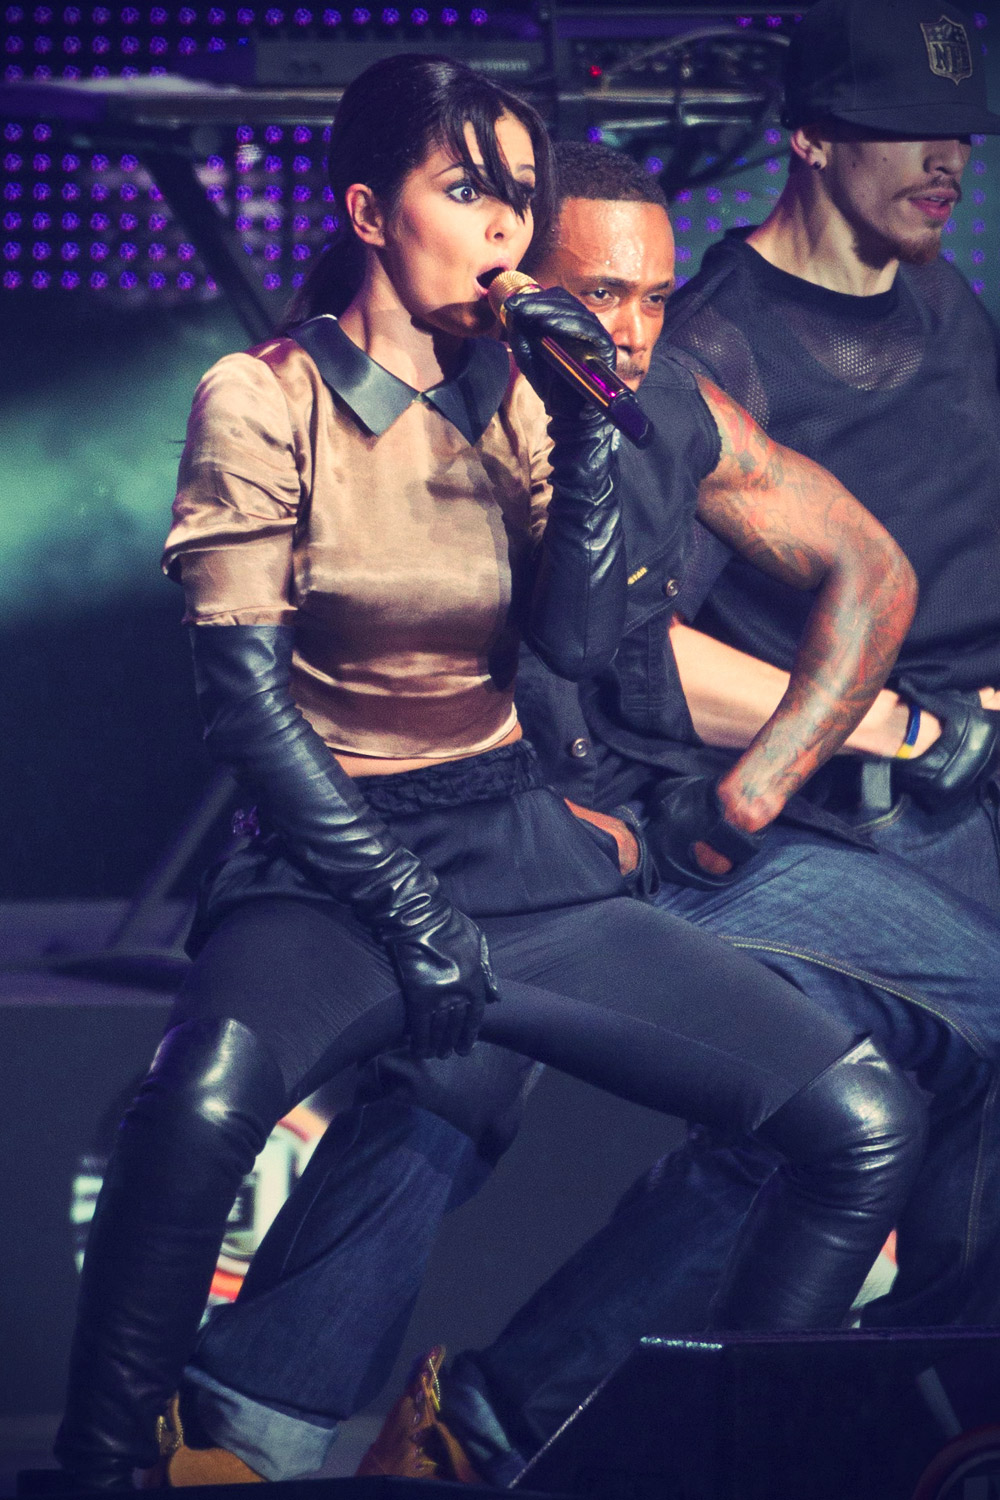 Cheryl Cole at The Voice 2012 concert